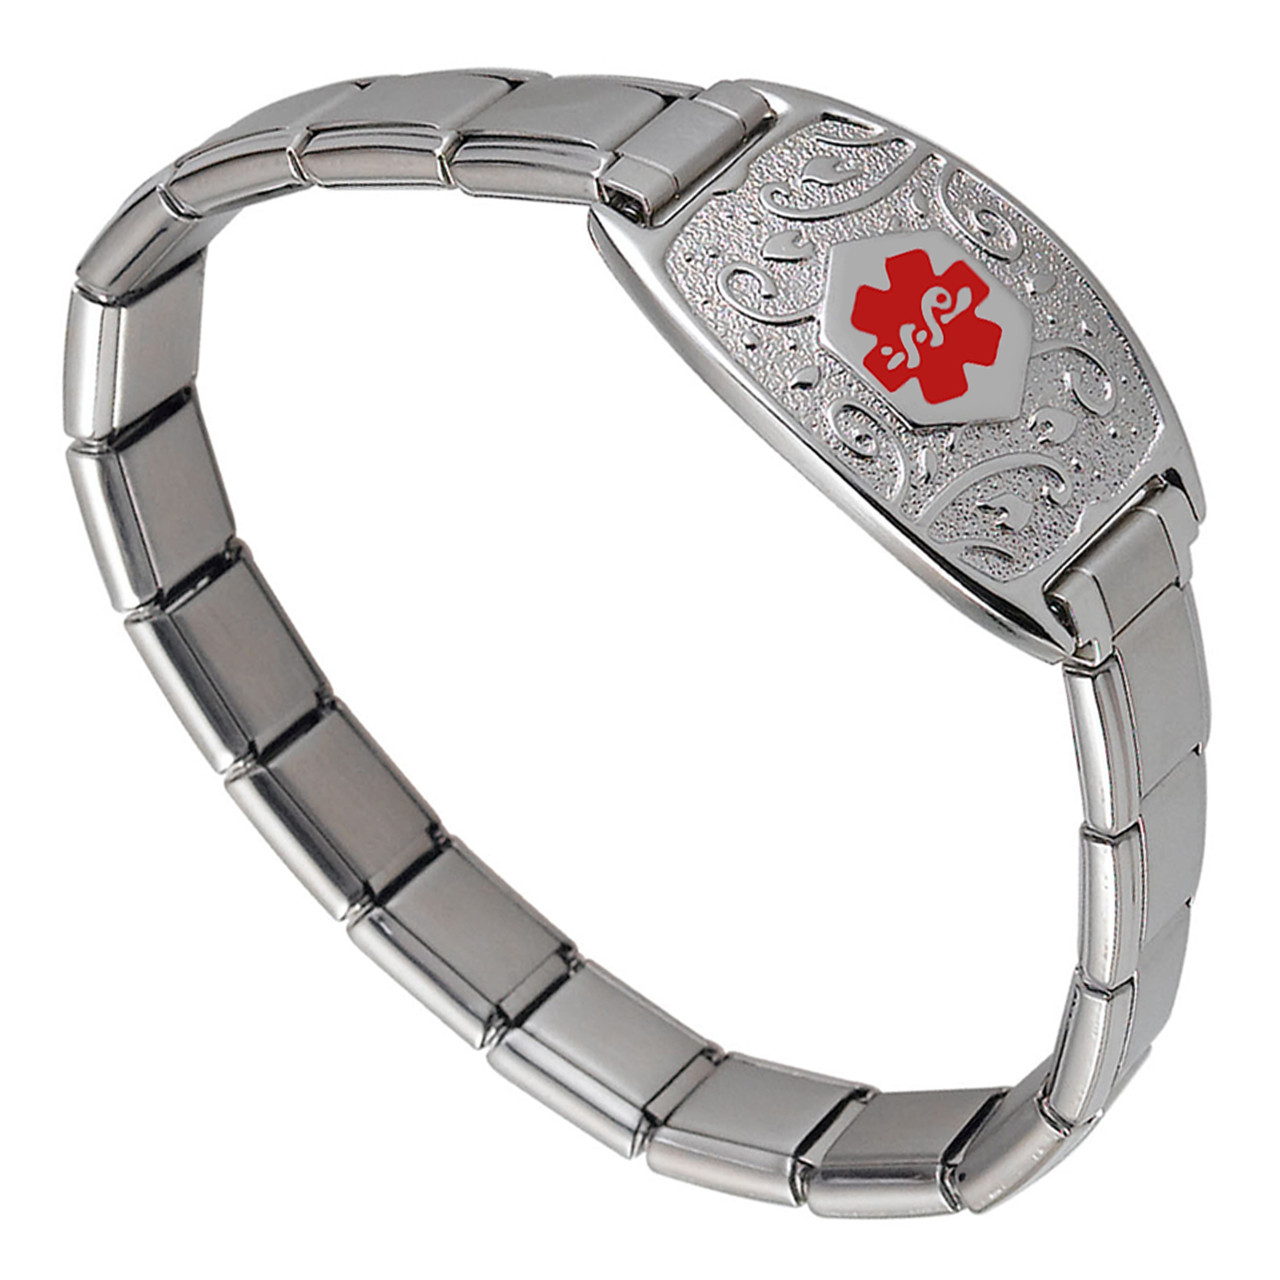 Medical Alert Bracelets >> Divoti Custom Engraved Lovely Filigree Stretch Medical Alert Bracelet Italian Charm